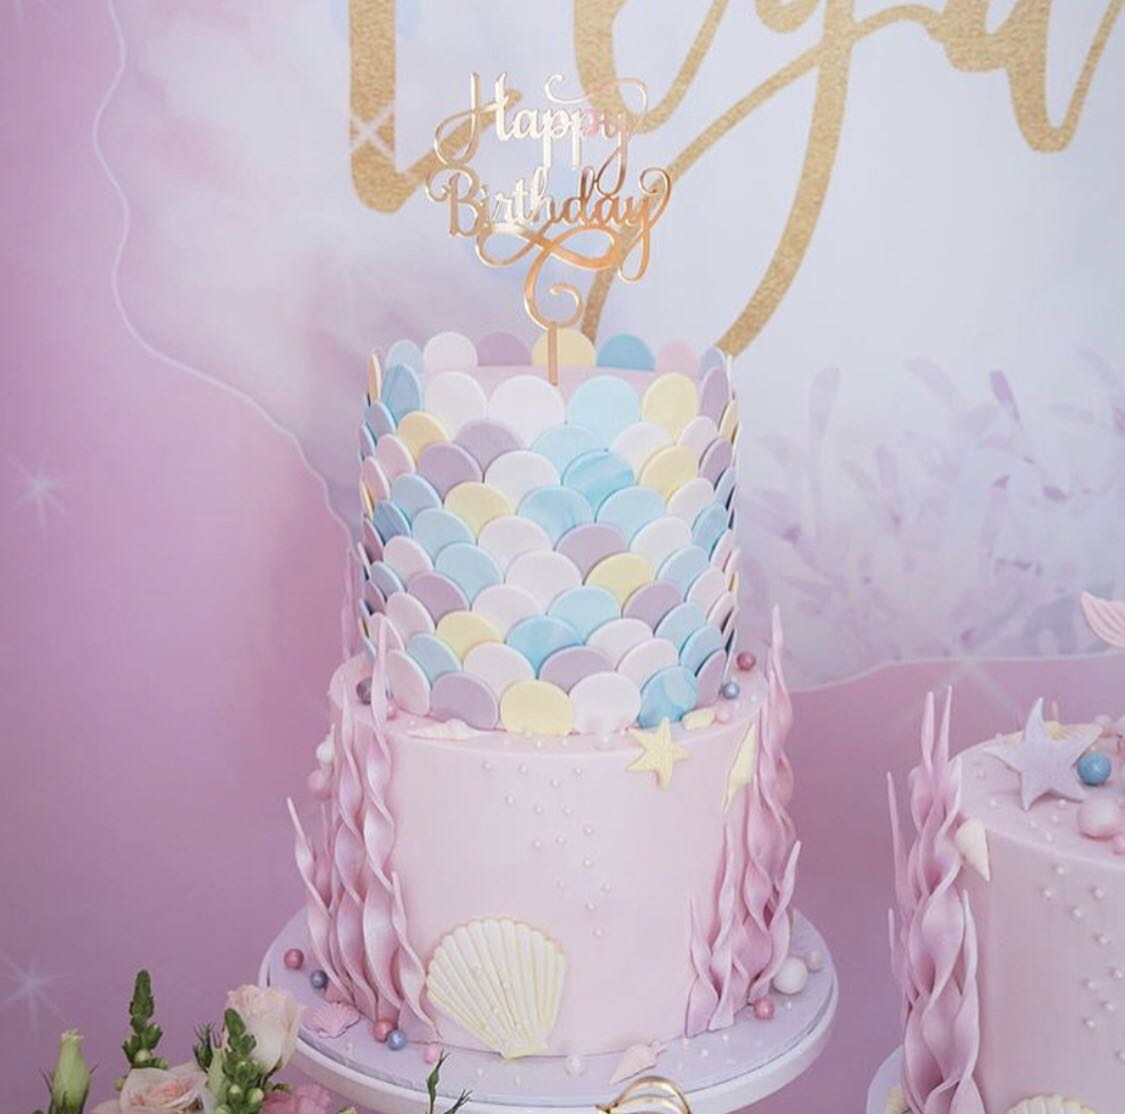 2 Tier Mermaid Birthday Cake For Little Princess Food Drinks